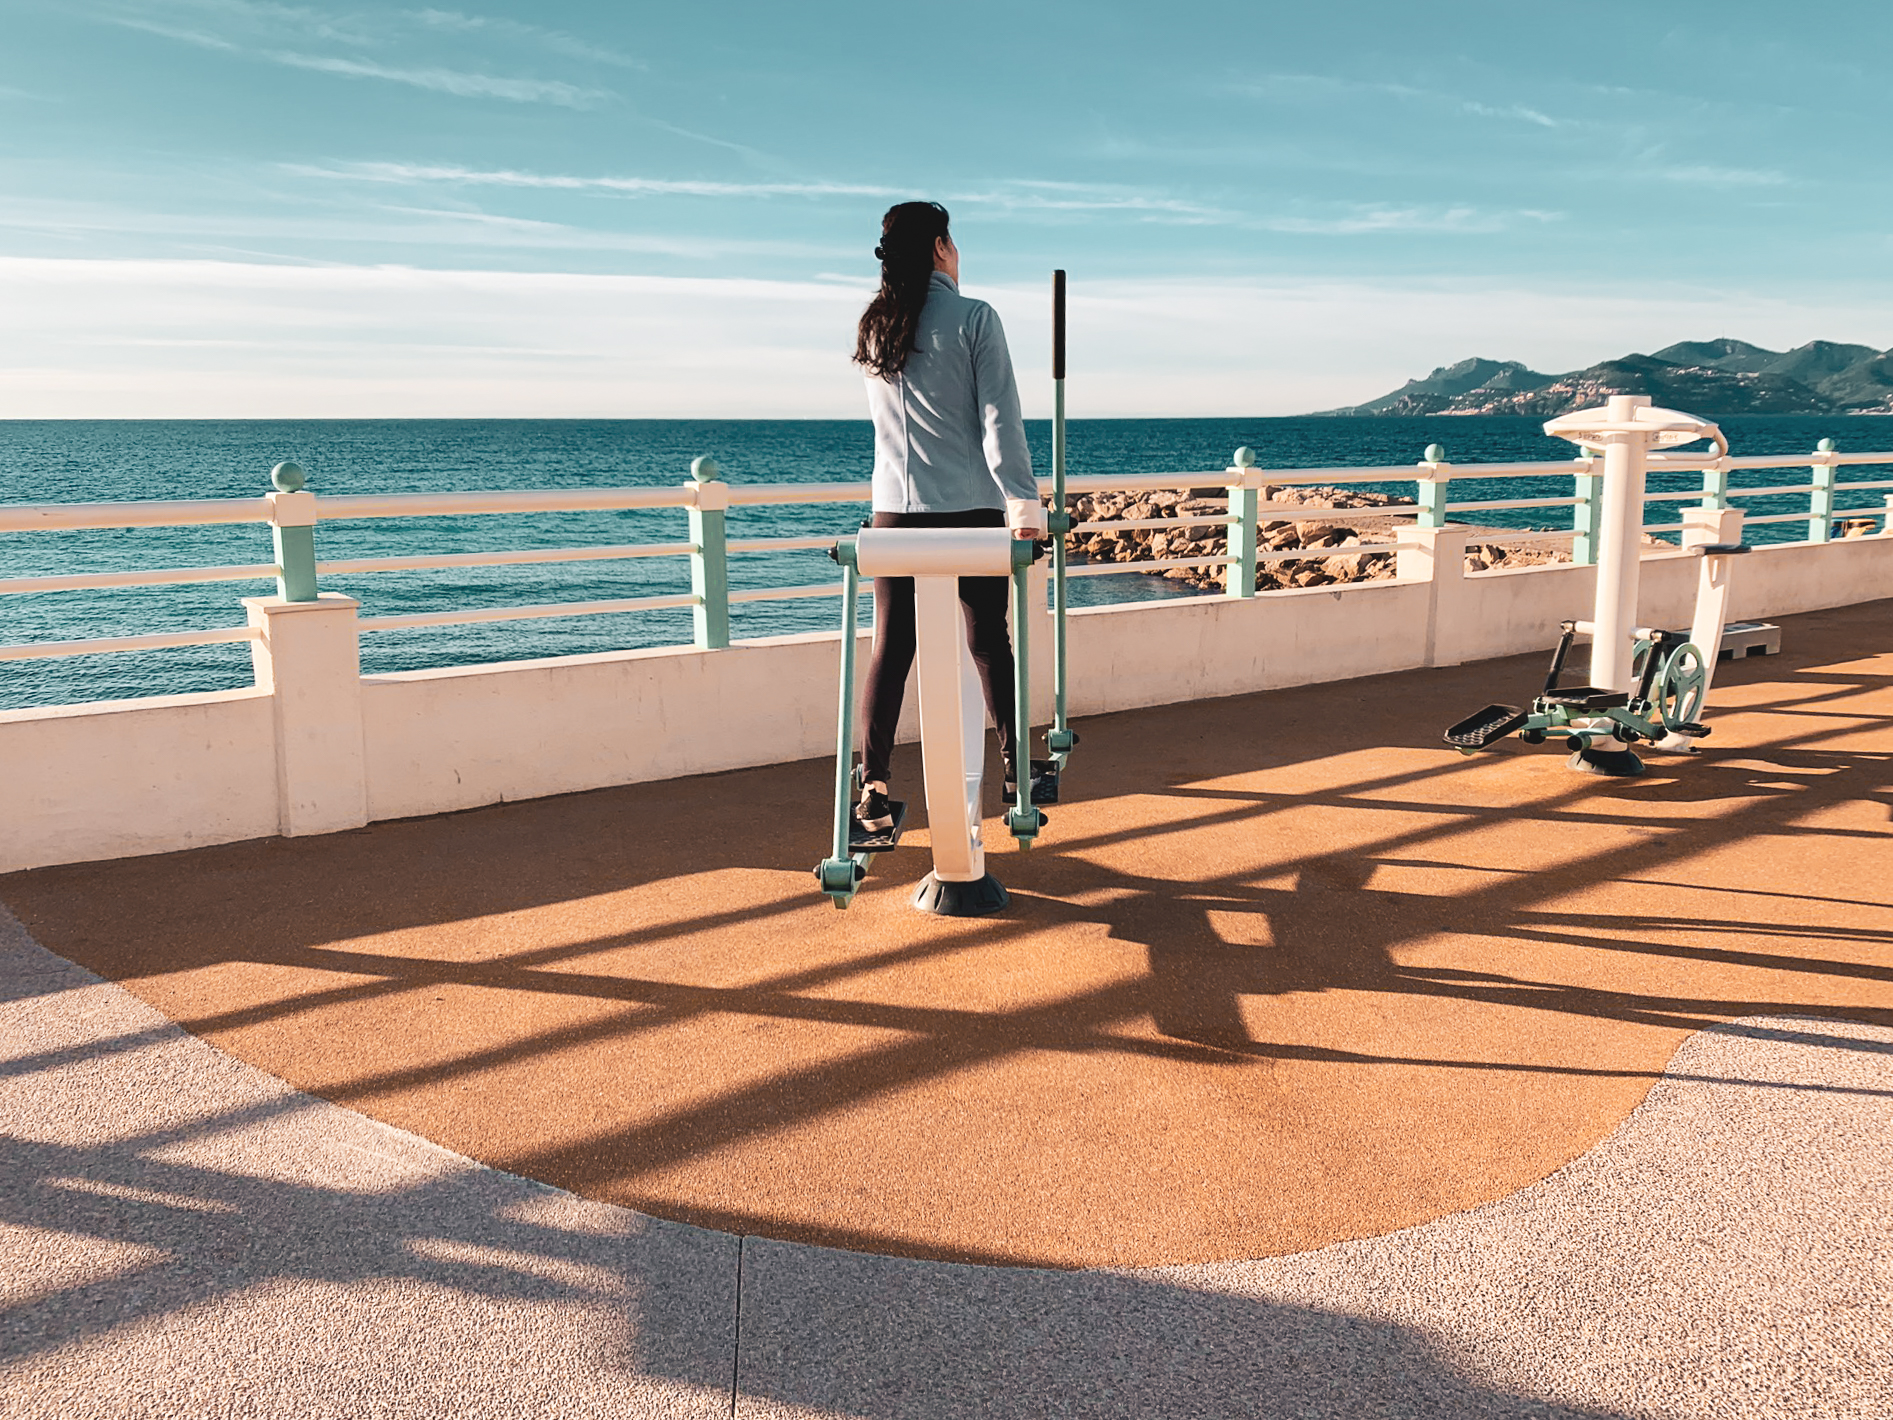 Sports activities to do in Cannes - Credit Summer Hotels